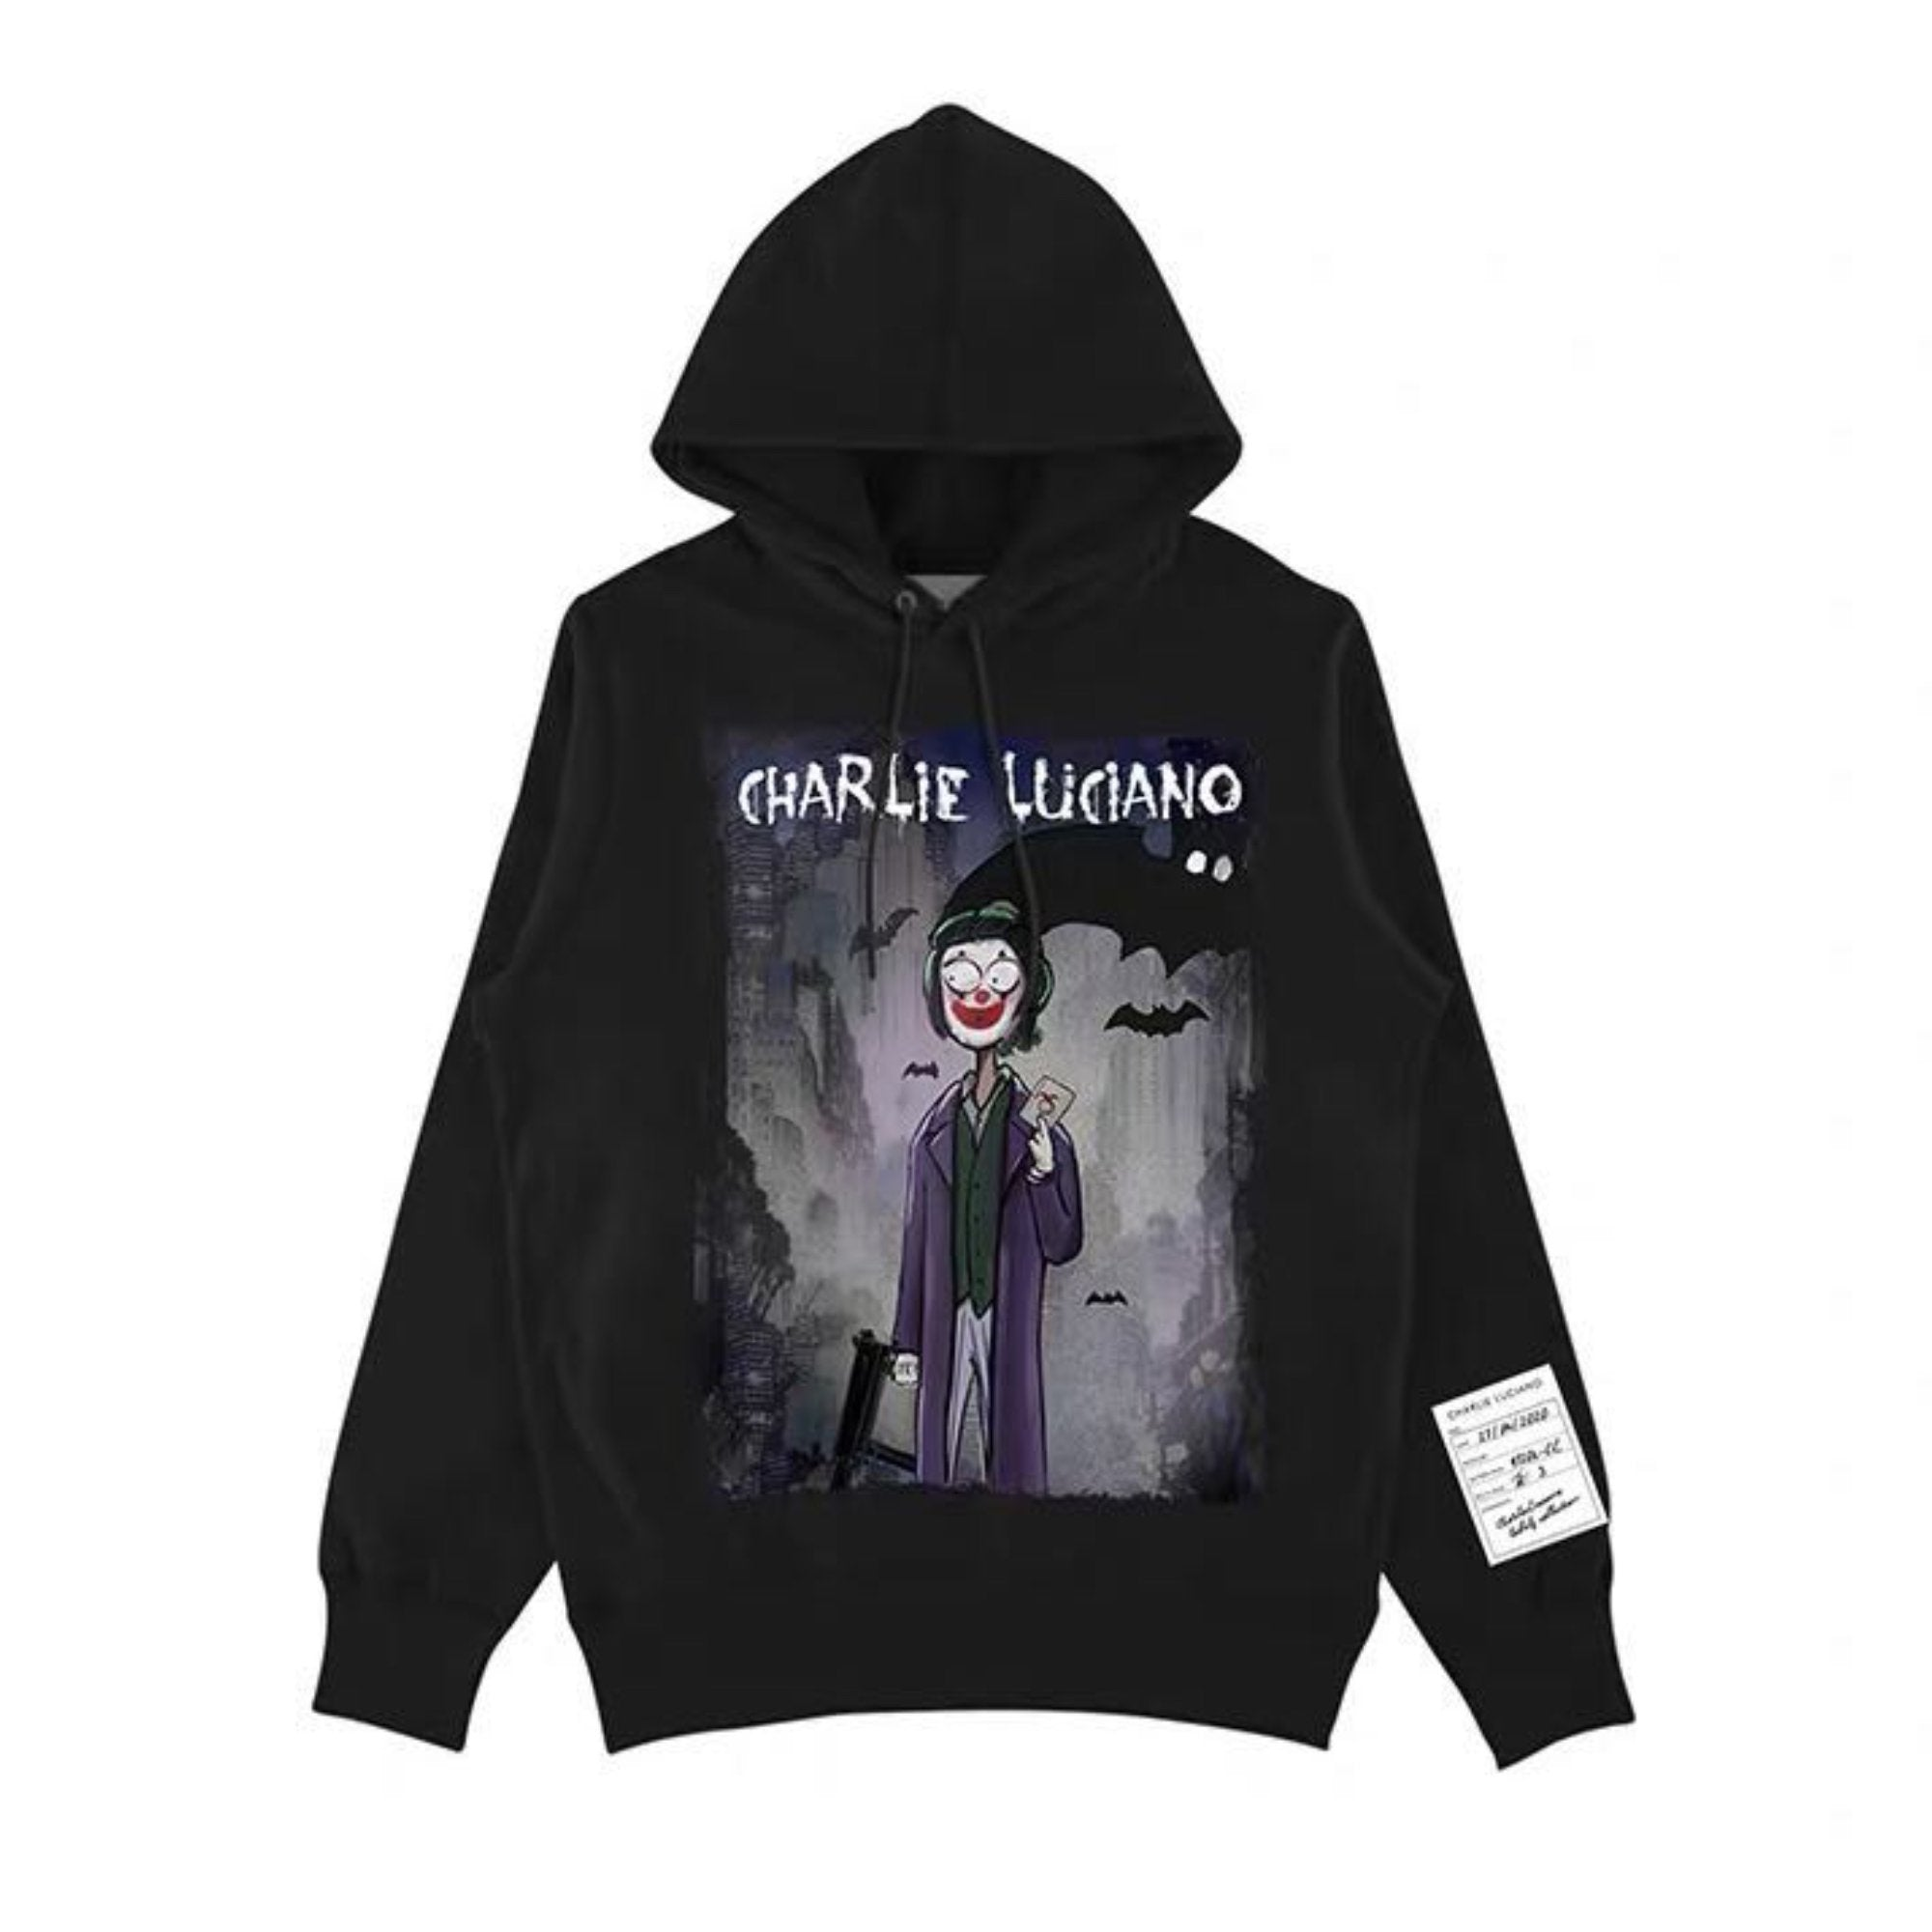 CHARLIE LUCIANO 'Joker' Print Hoodie | MADA IN CHINA